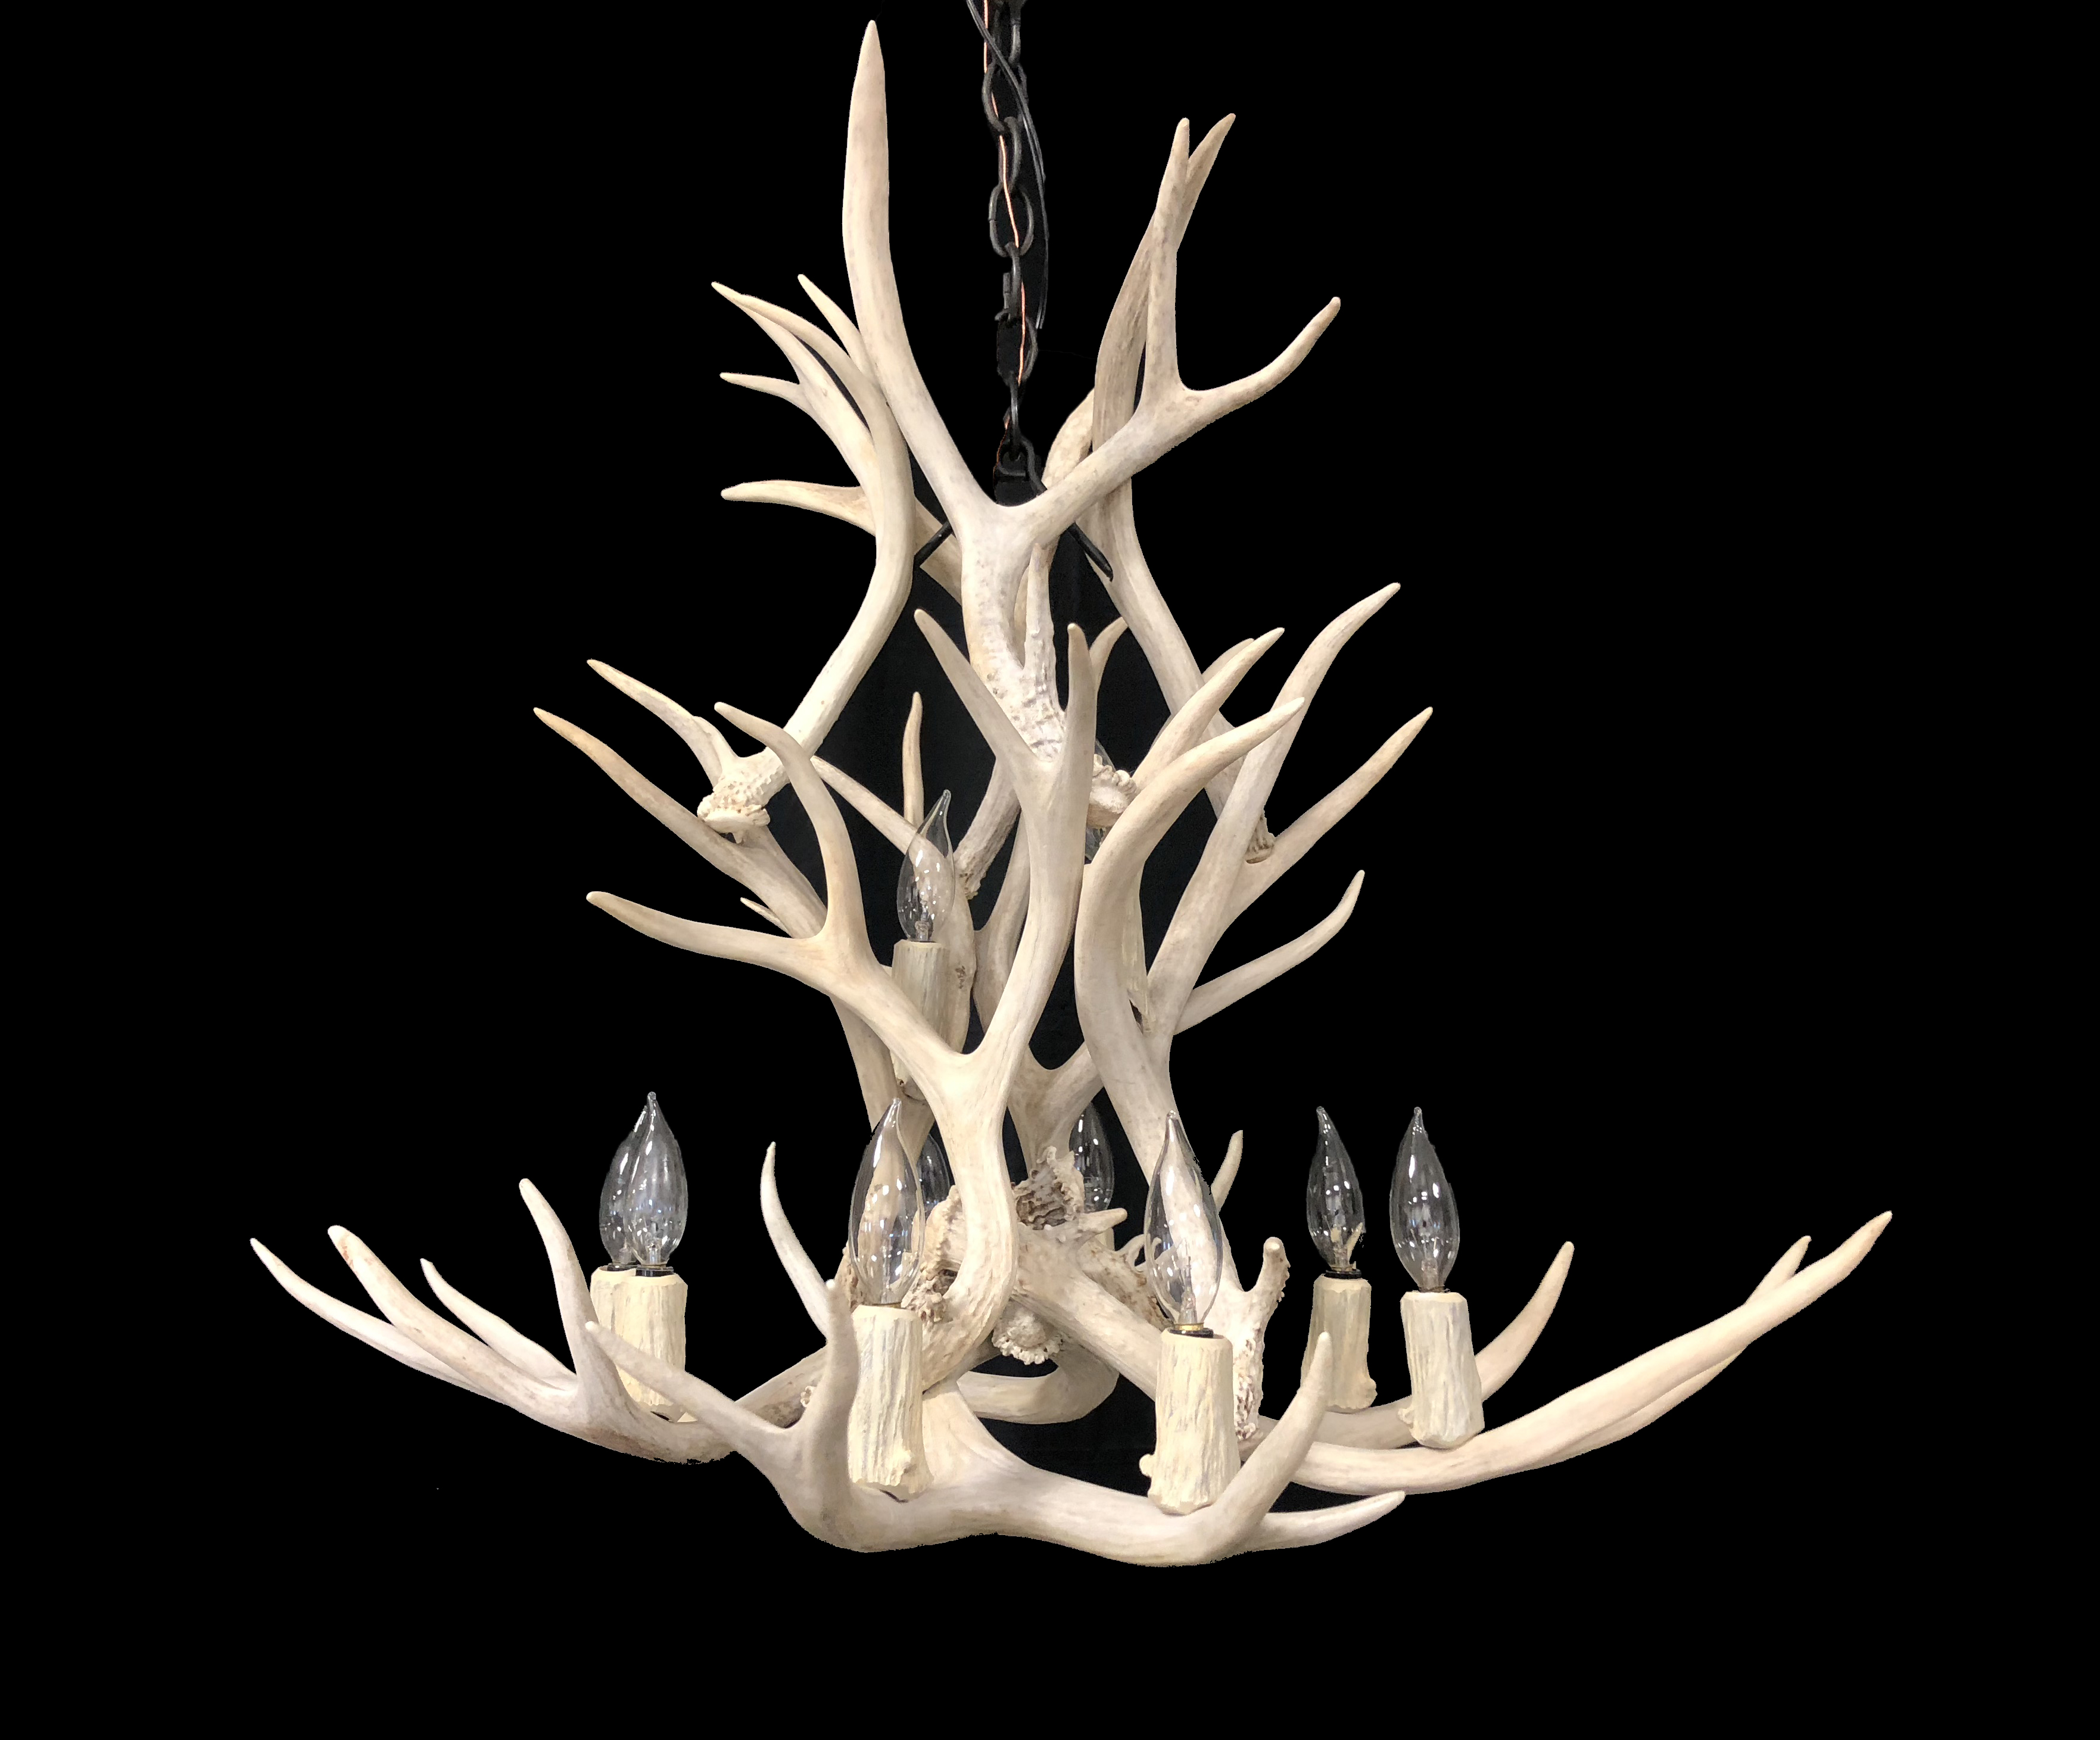 real antler chandelier round at antler chandeliers lighting company each real chandelier is custom made and embodies the stately beauty of antlers chanderliers company